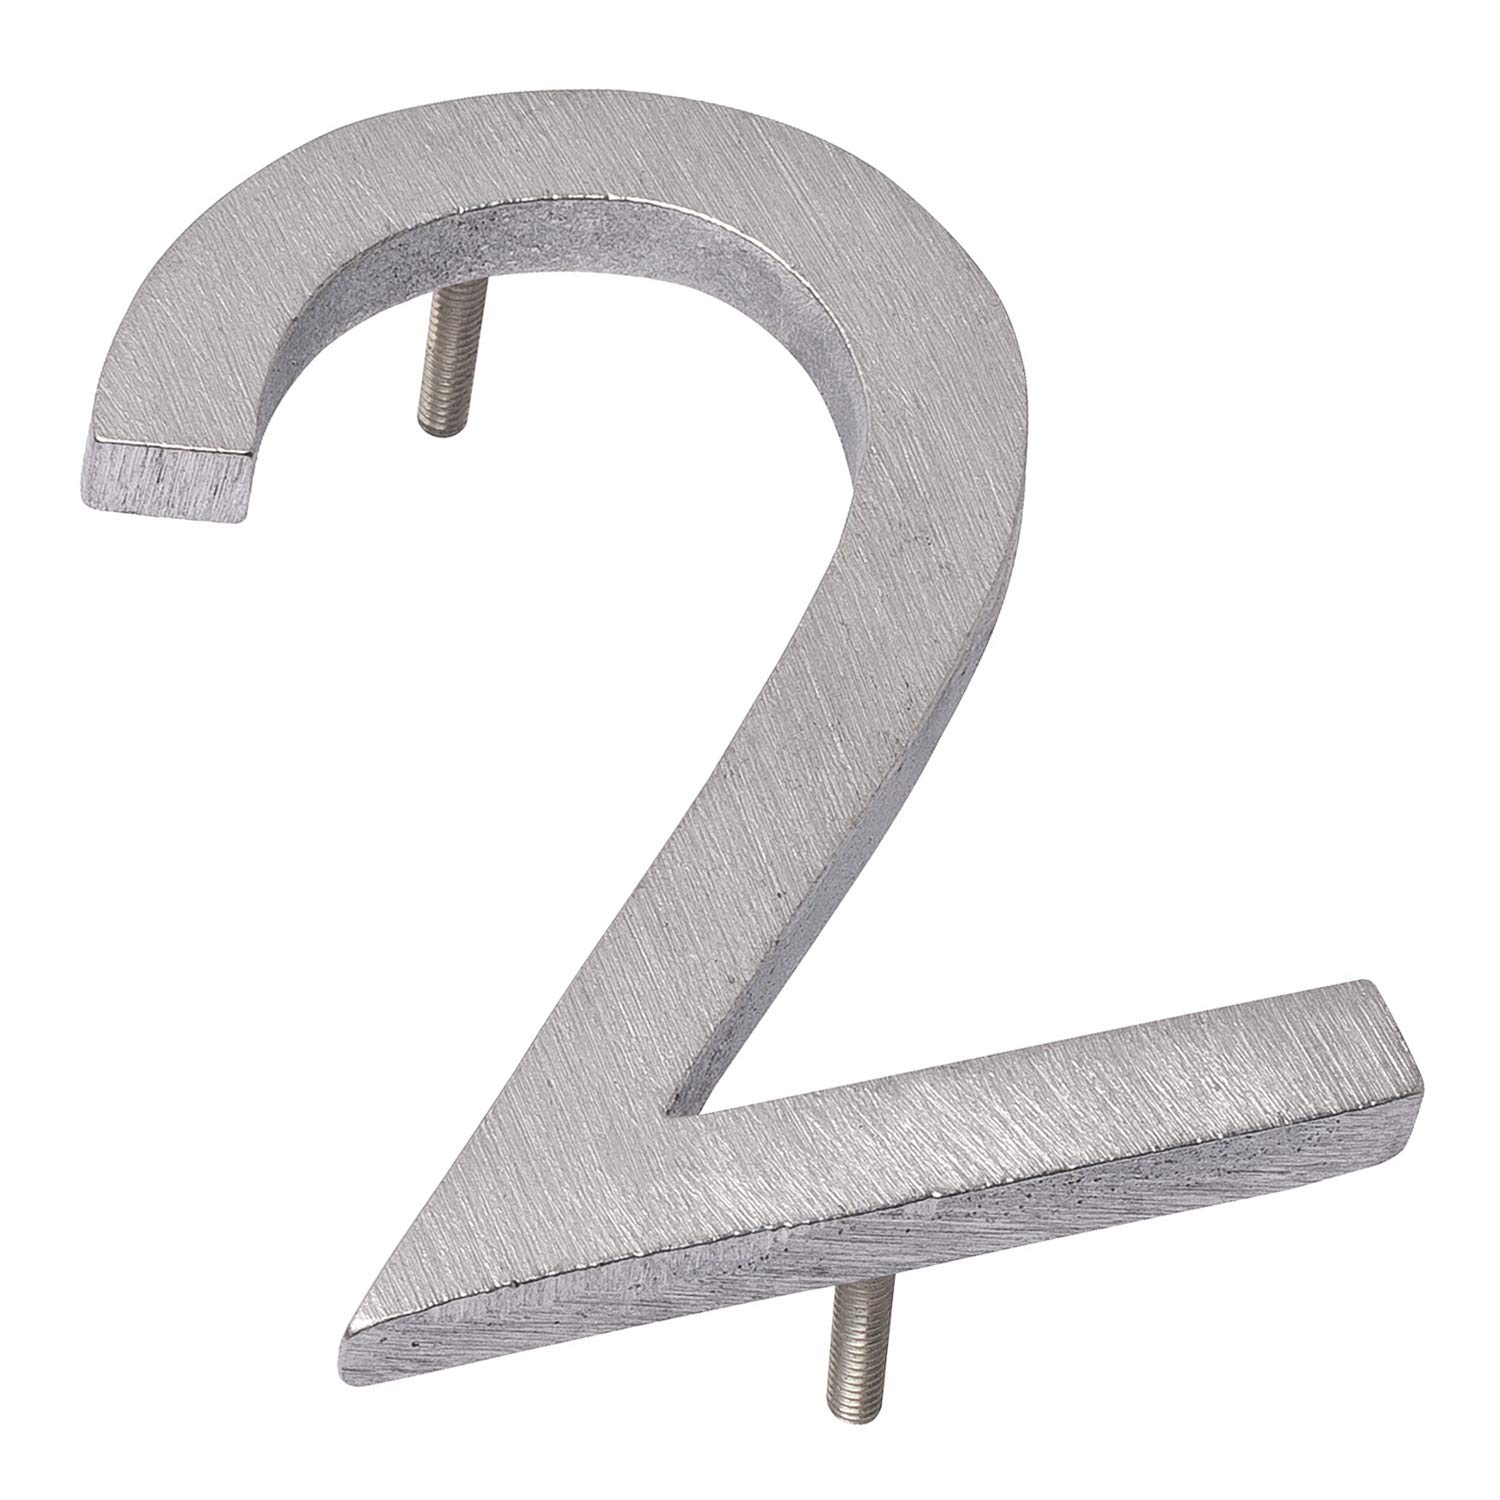 Montague Metal Products MHN-08-2-F-BA1 Floating House Number, 8'' x 5.75'' x 0.375'' Polished Aluminum